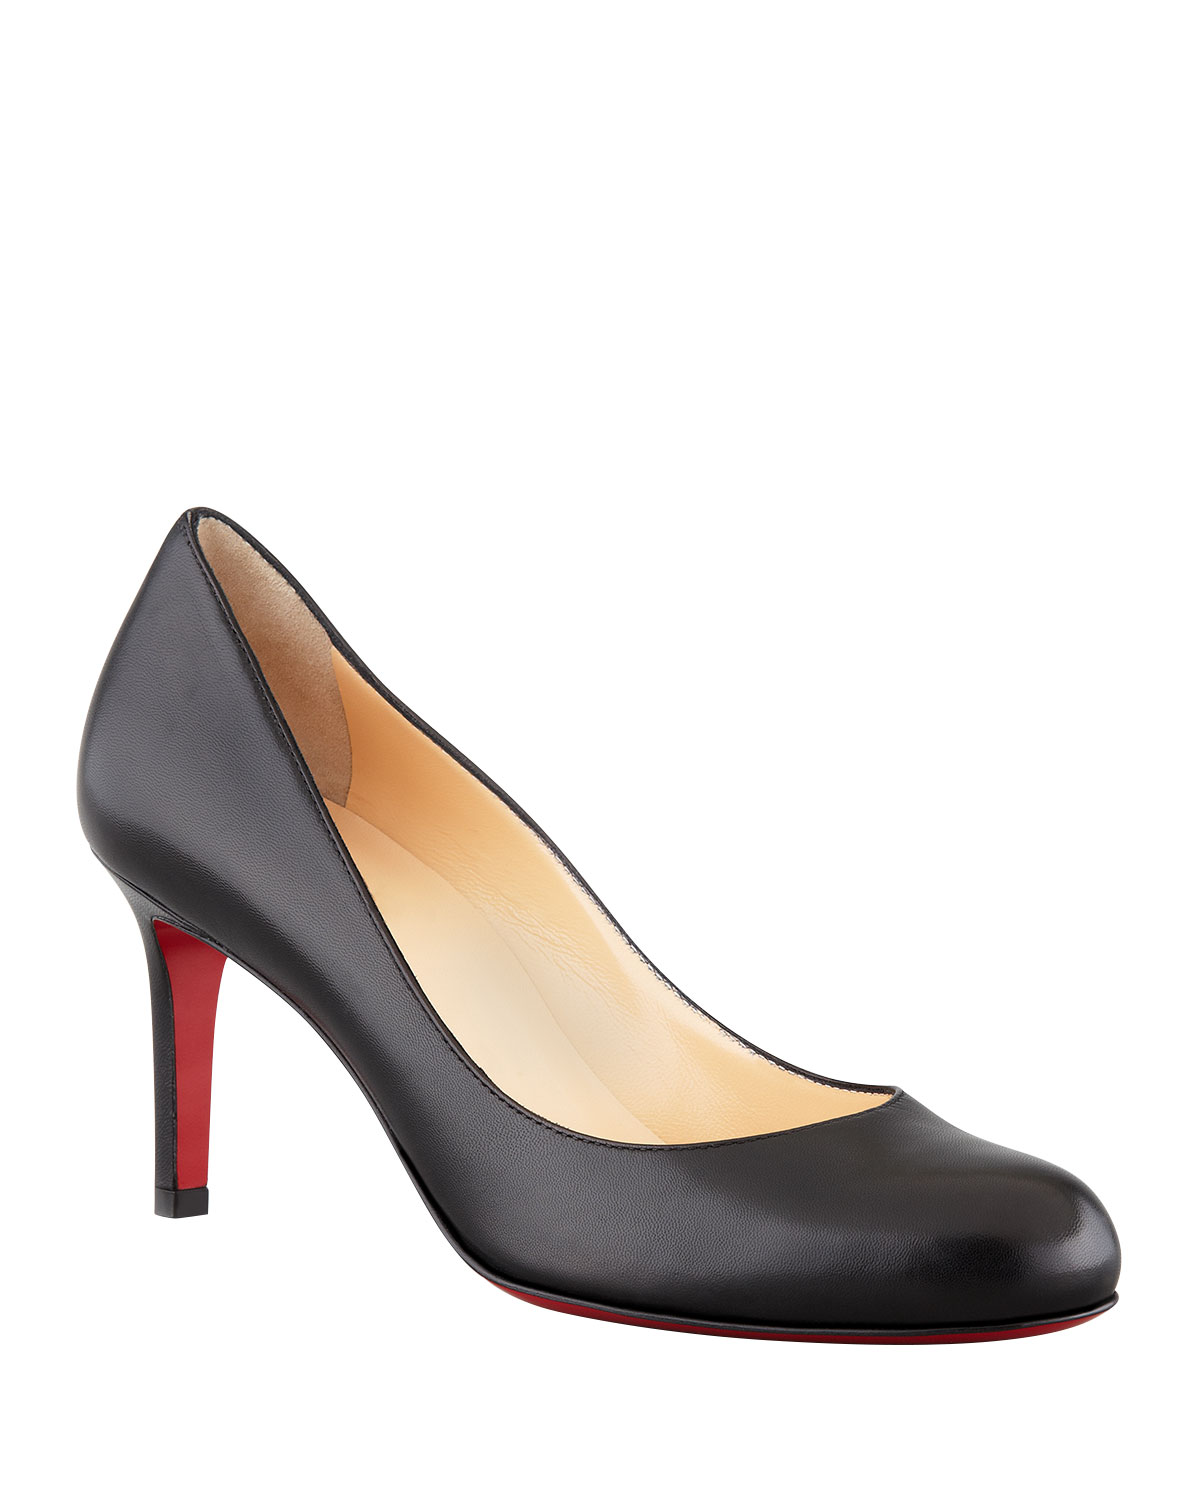 Simple Leather Red Sole Pump by Christian Louboutin